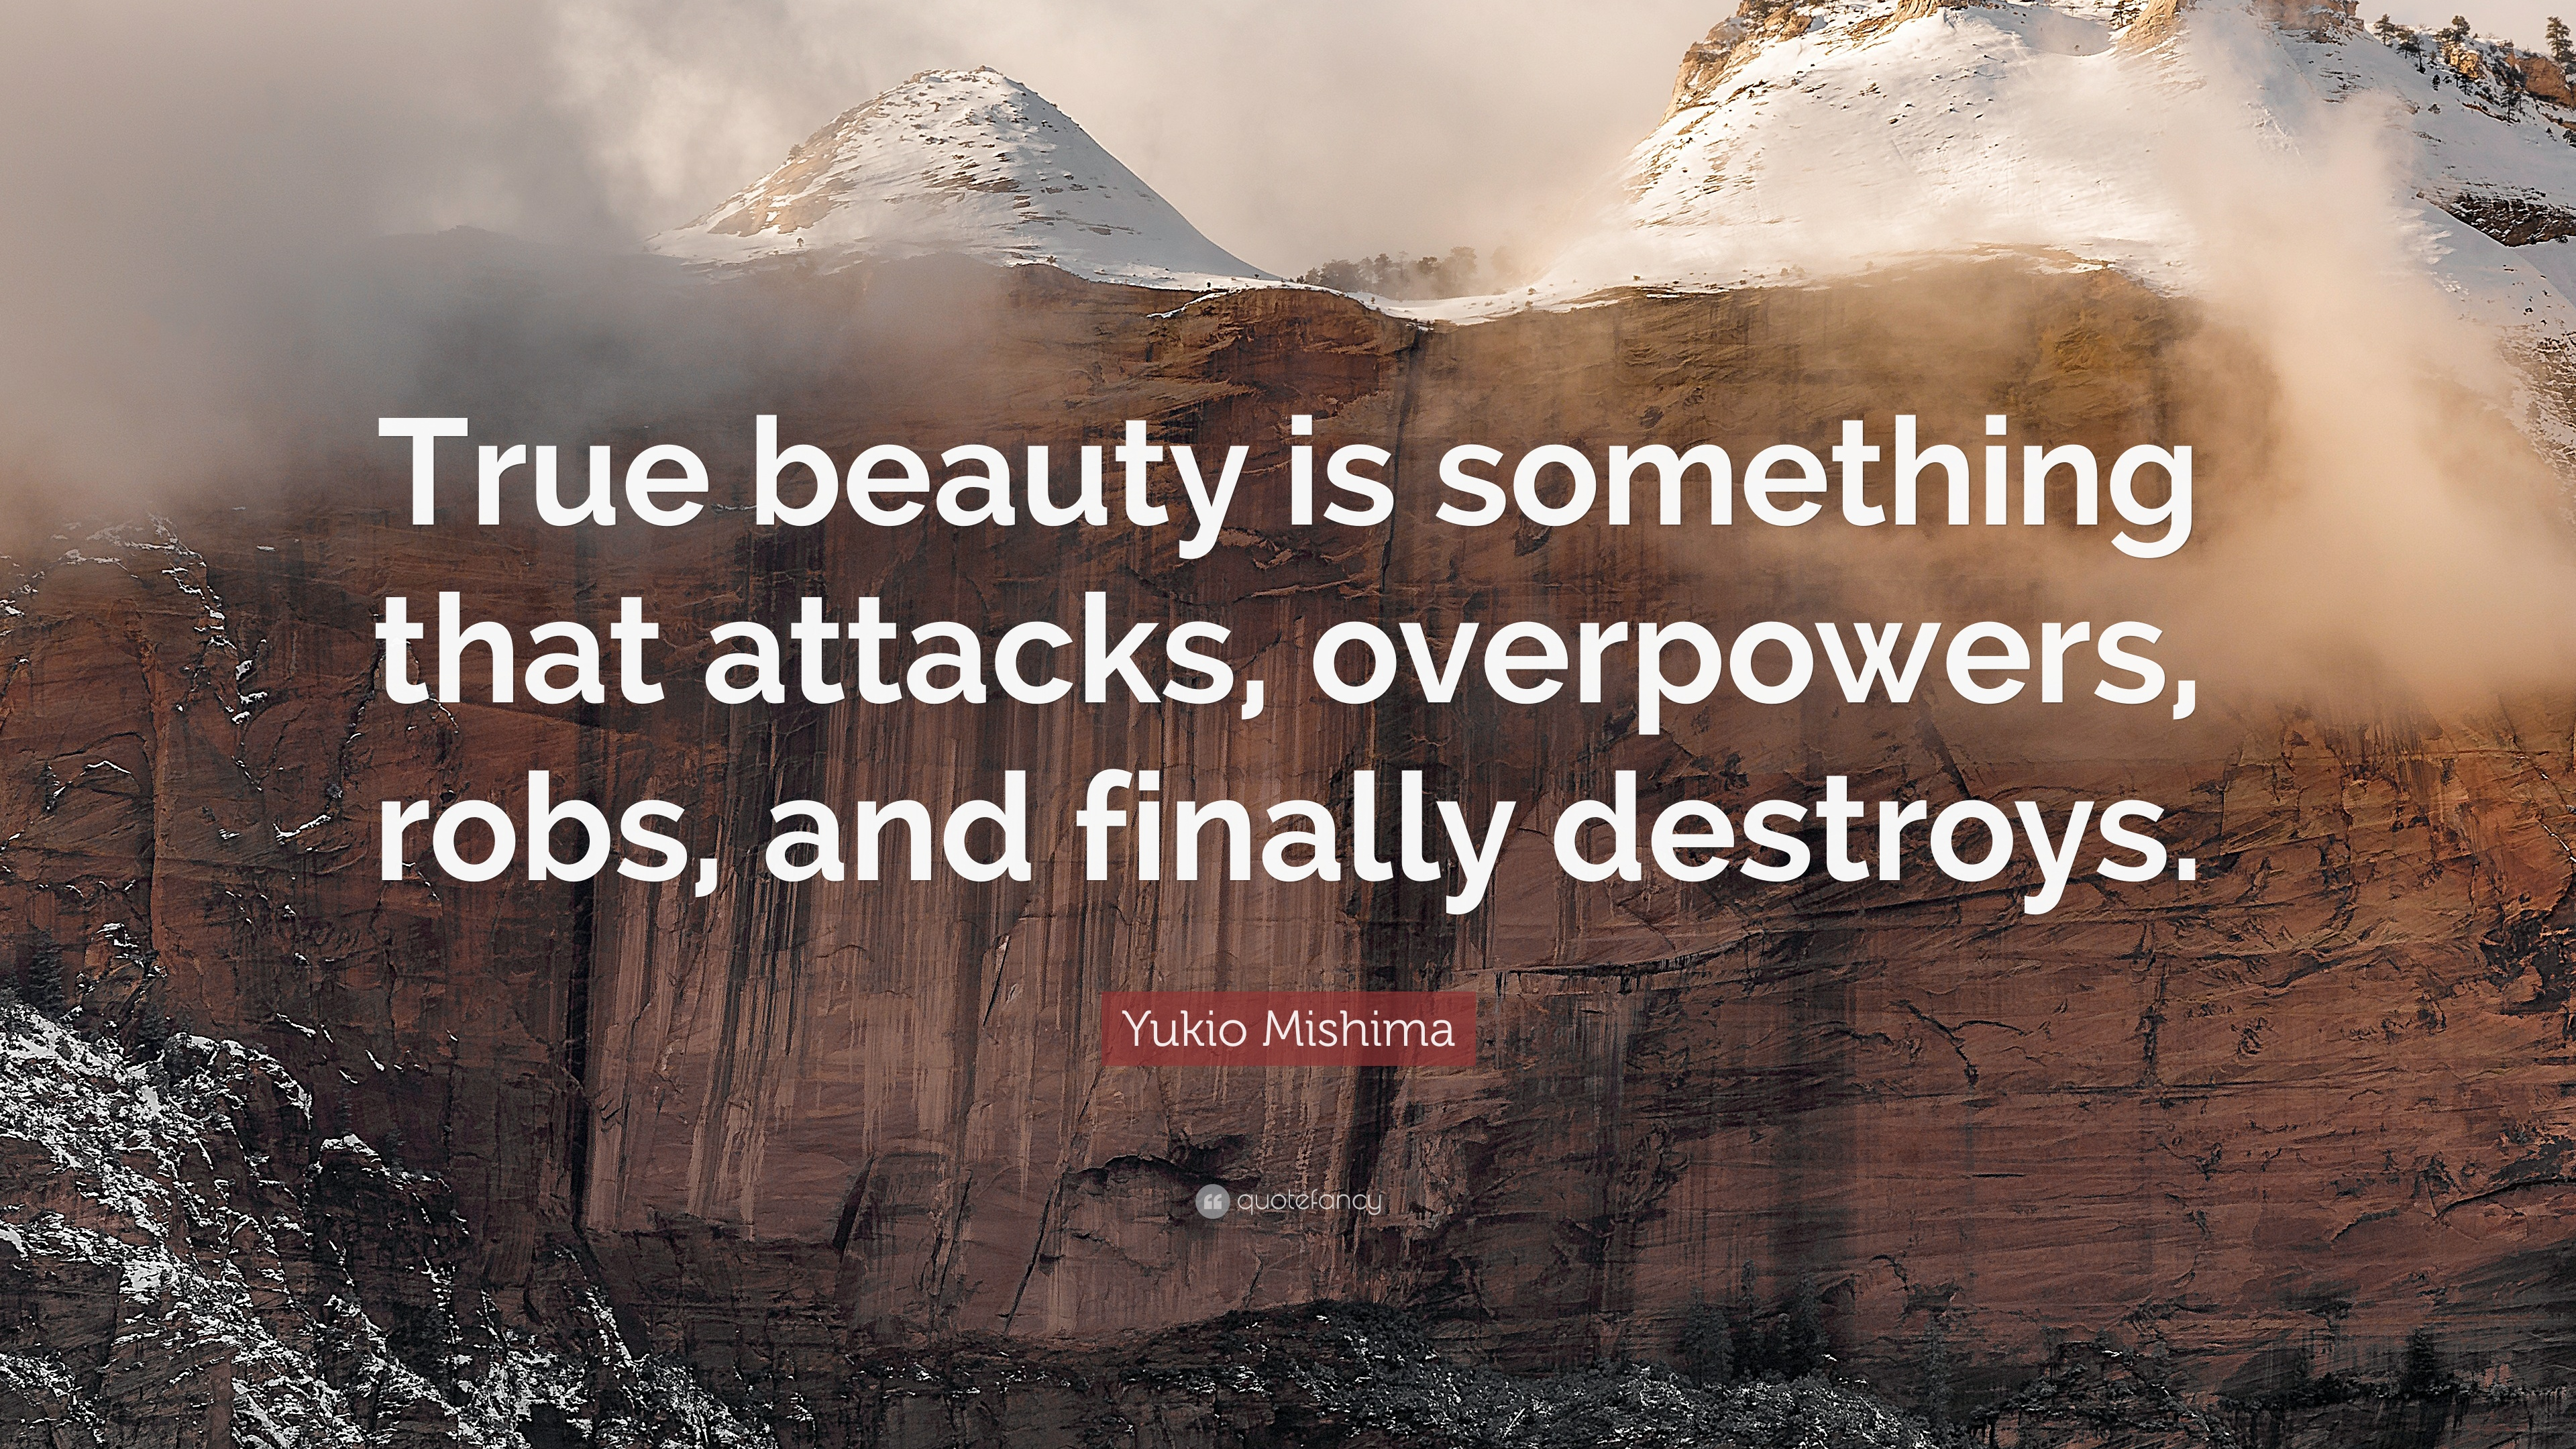 Yukio Mishima Quote True Beauty Is Something That Attacks Overpowers Robs